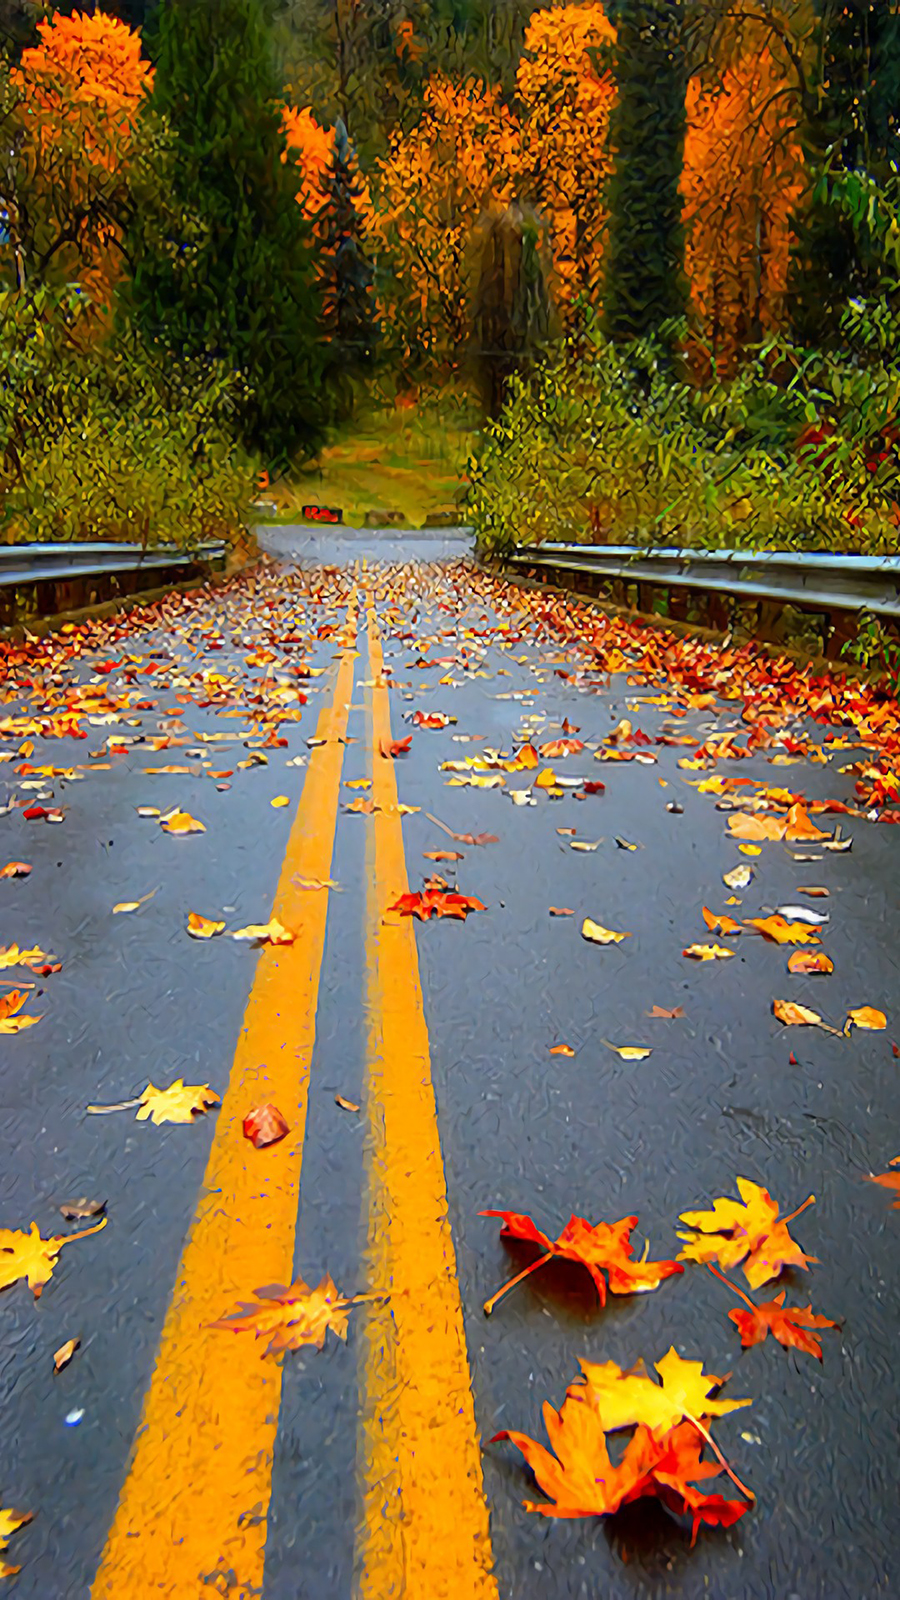 Best Wallpapers about Road for Phone